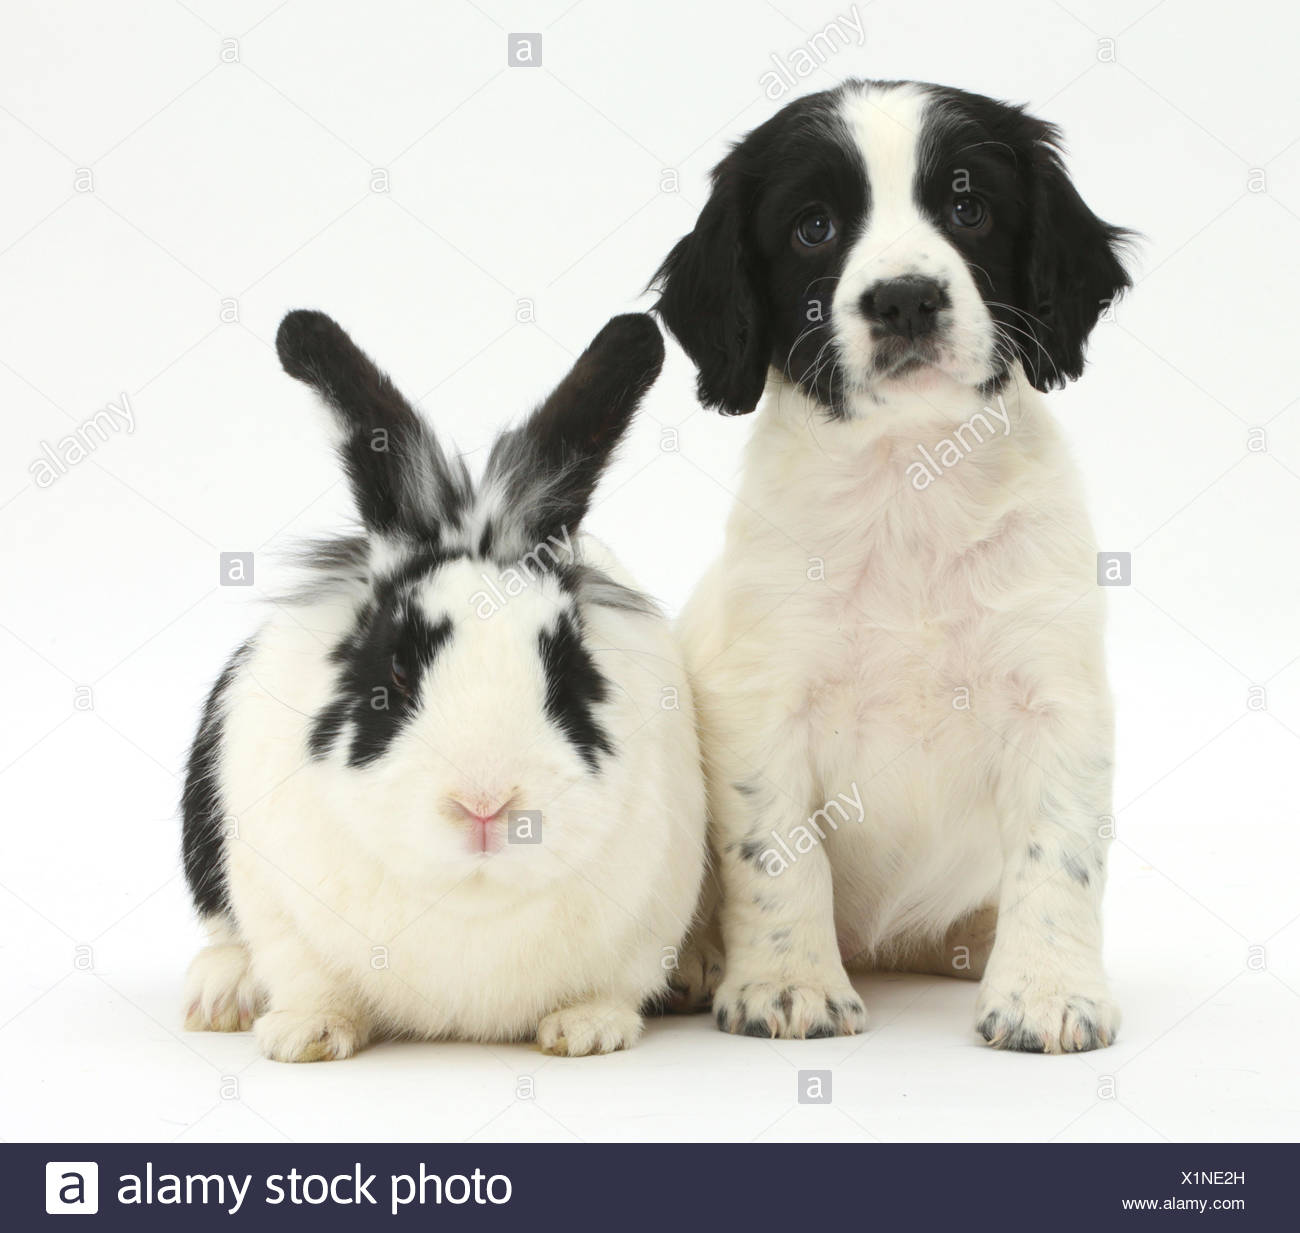 Black-and-white Springer spaniel puppy, age 6 weeks, and rabbit. - Stock Image